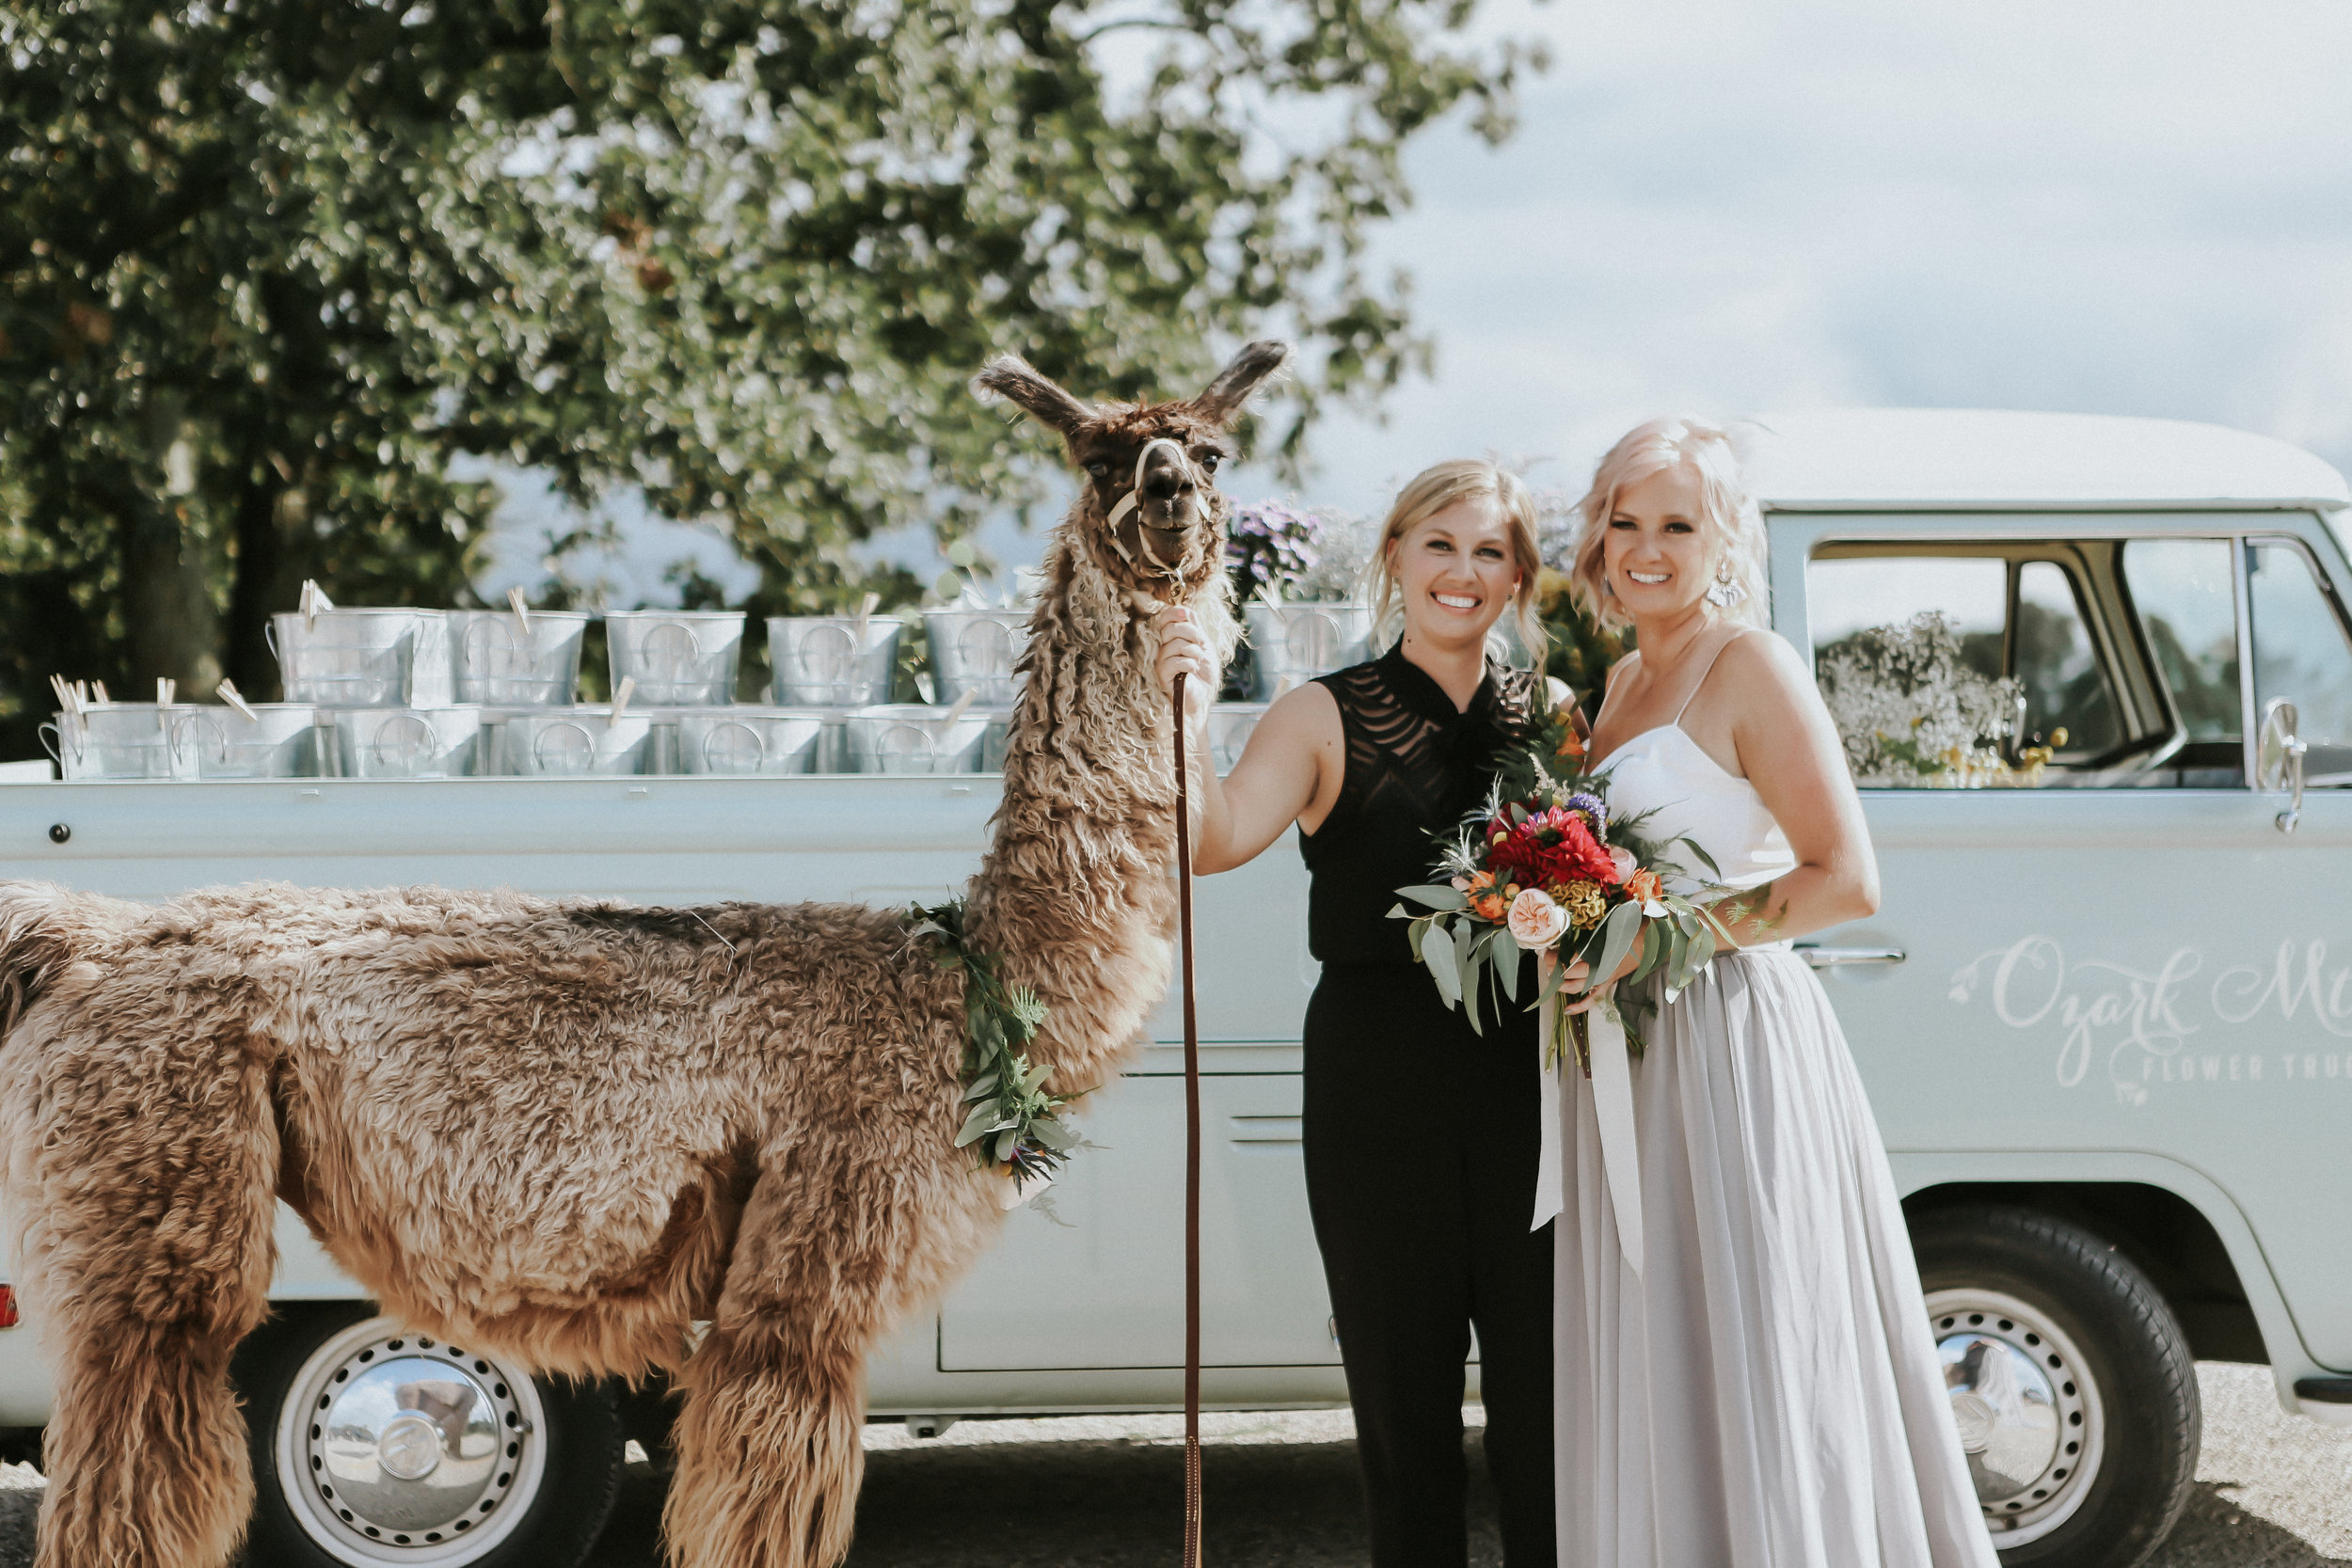 Natalee and Felicia have time to pose with Penny the Llama and Ozark Mtn. Flower Truck at their Greenhouse Two Rivers wedding since their wedding planner, Unions With Celia, took care of all the details.